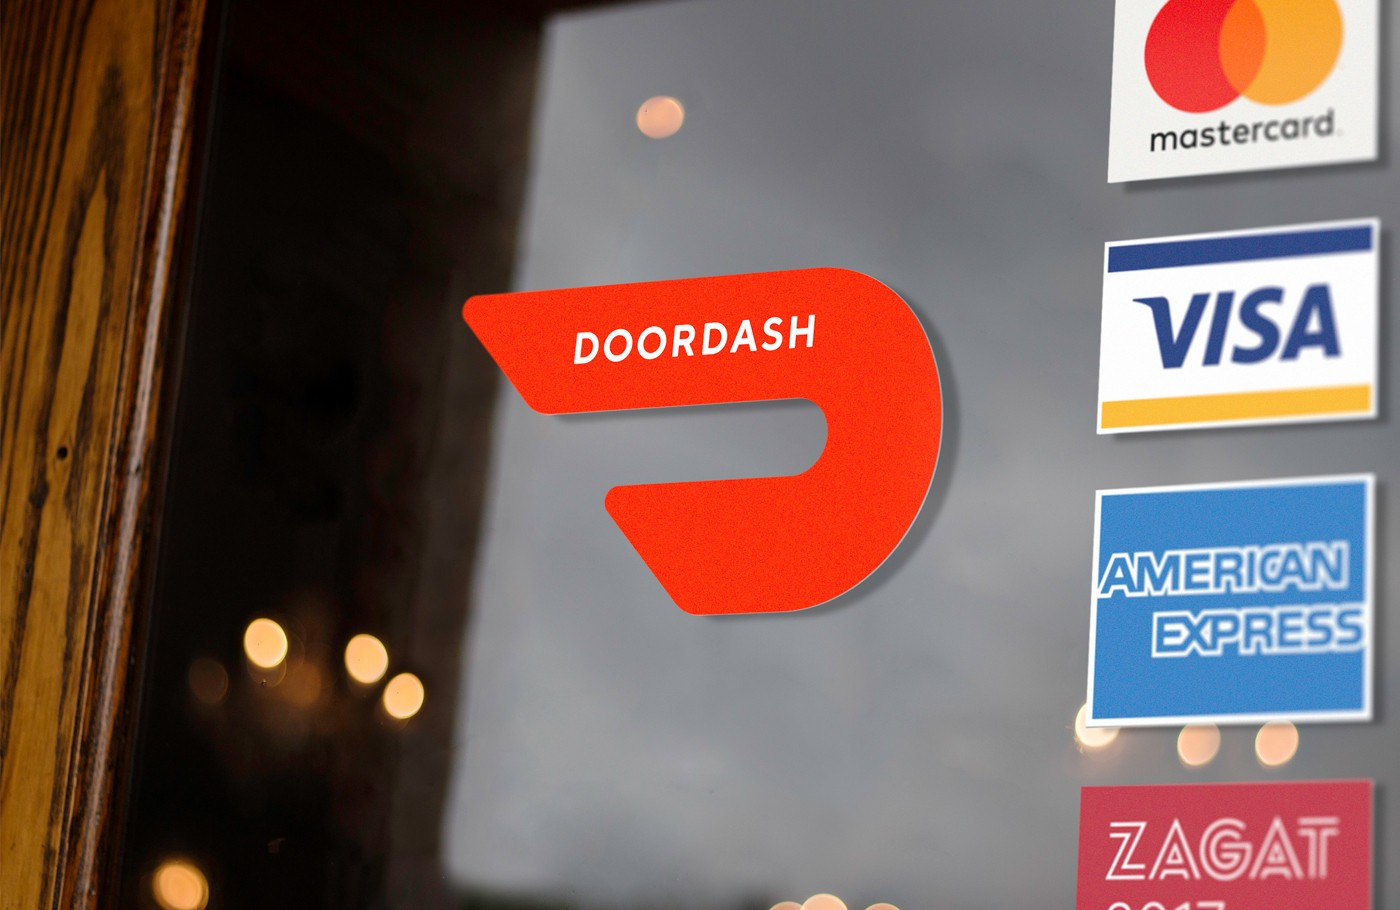 DoorDash, Another Food-Delivery Service, Debuts Today | Scene and